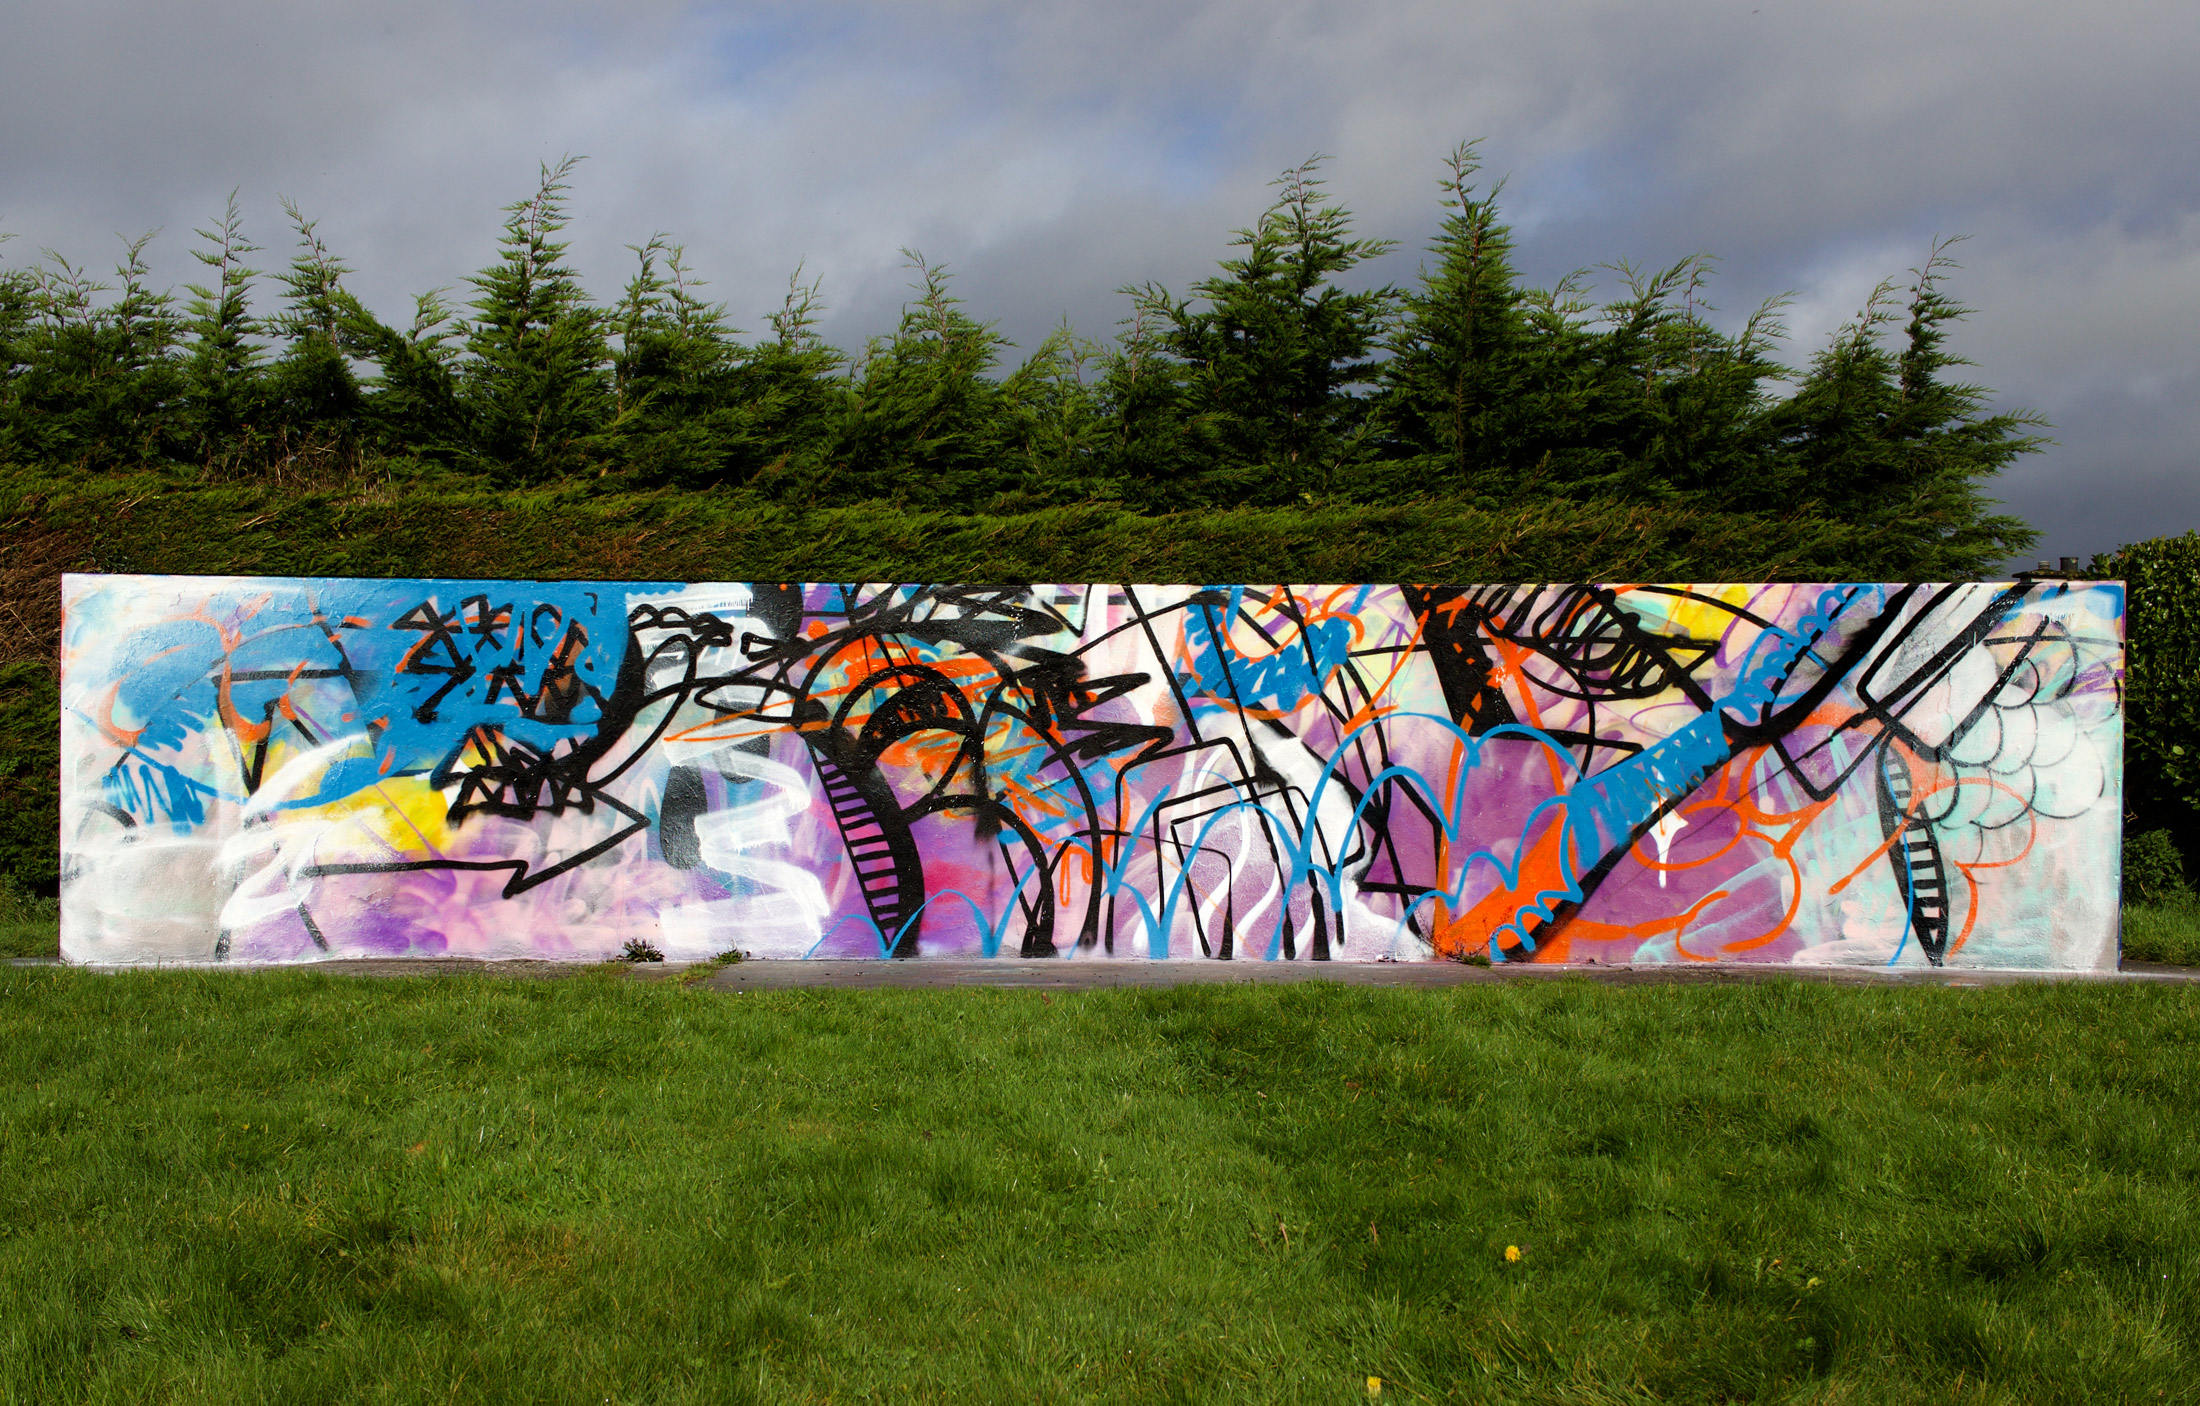 abstract-graffiti-art--thow-ups-cornwall-oct-2020-1